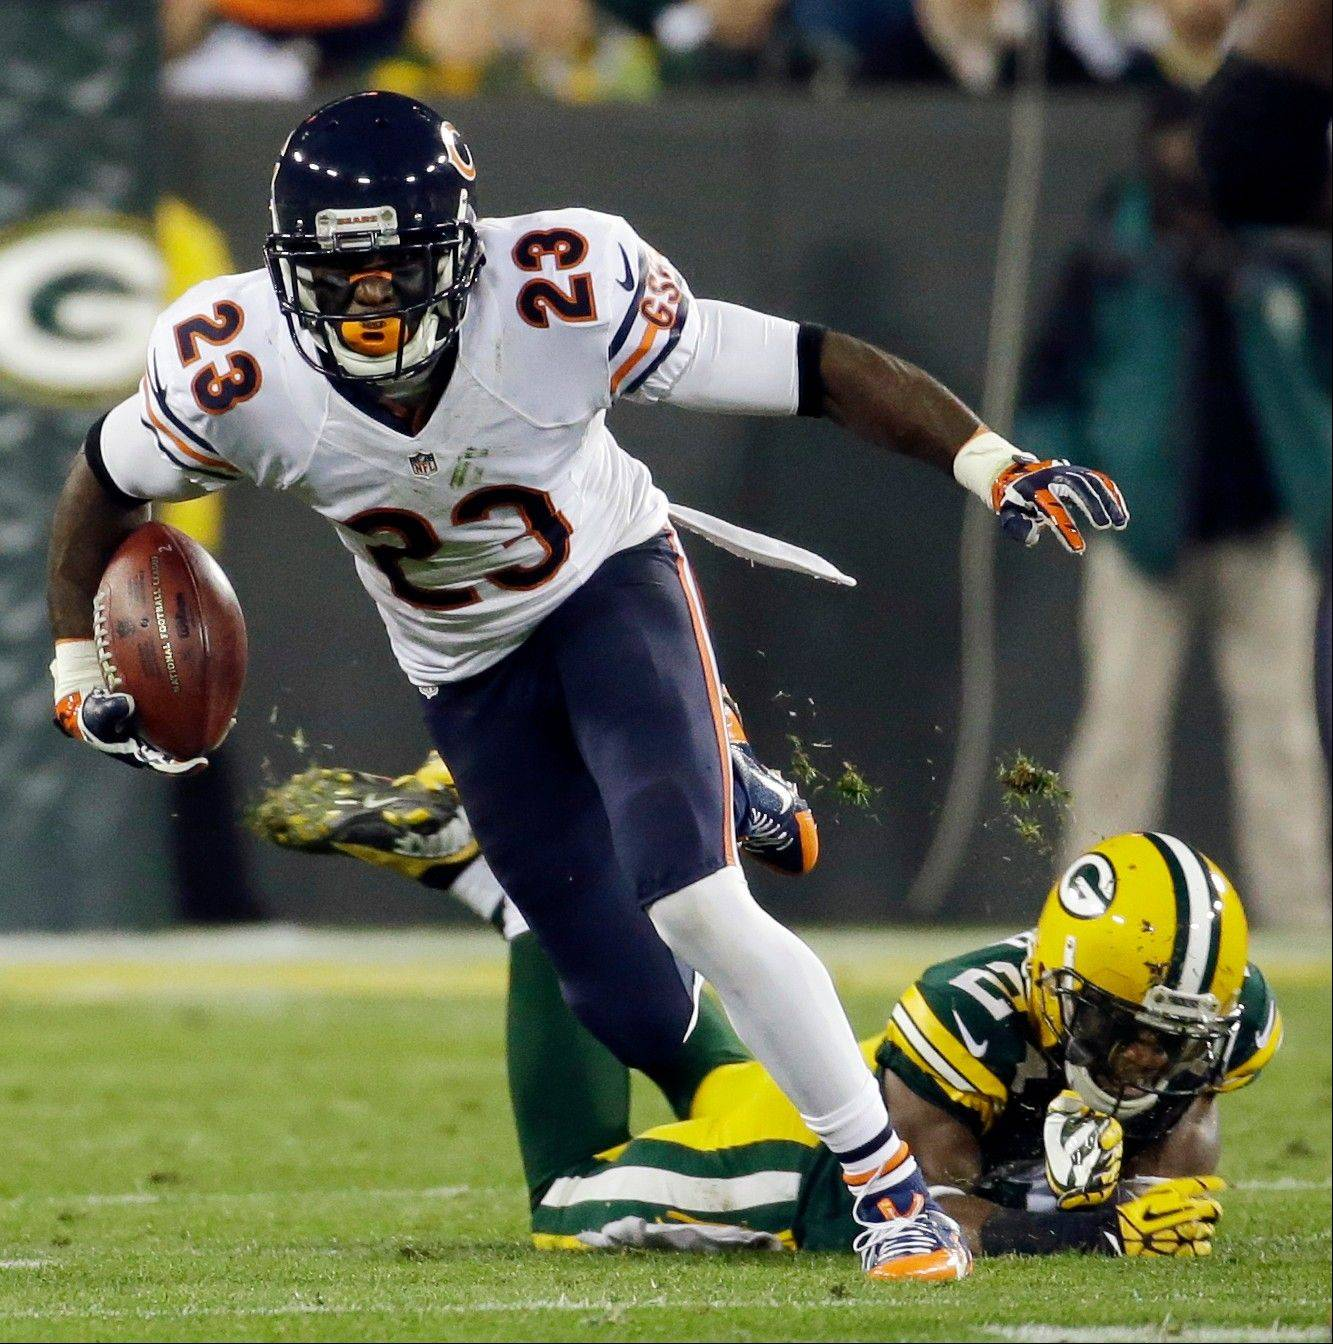 The Bears� Devin Hester tries to get past Green Bay Packers� Jarrett Bush on a punt return in the Nov. 4 game. Back in May, Hester raced a cheetah for a documentary.